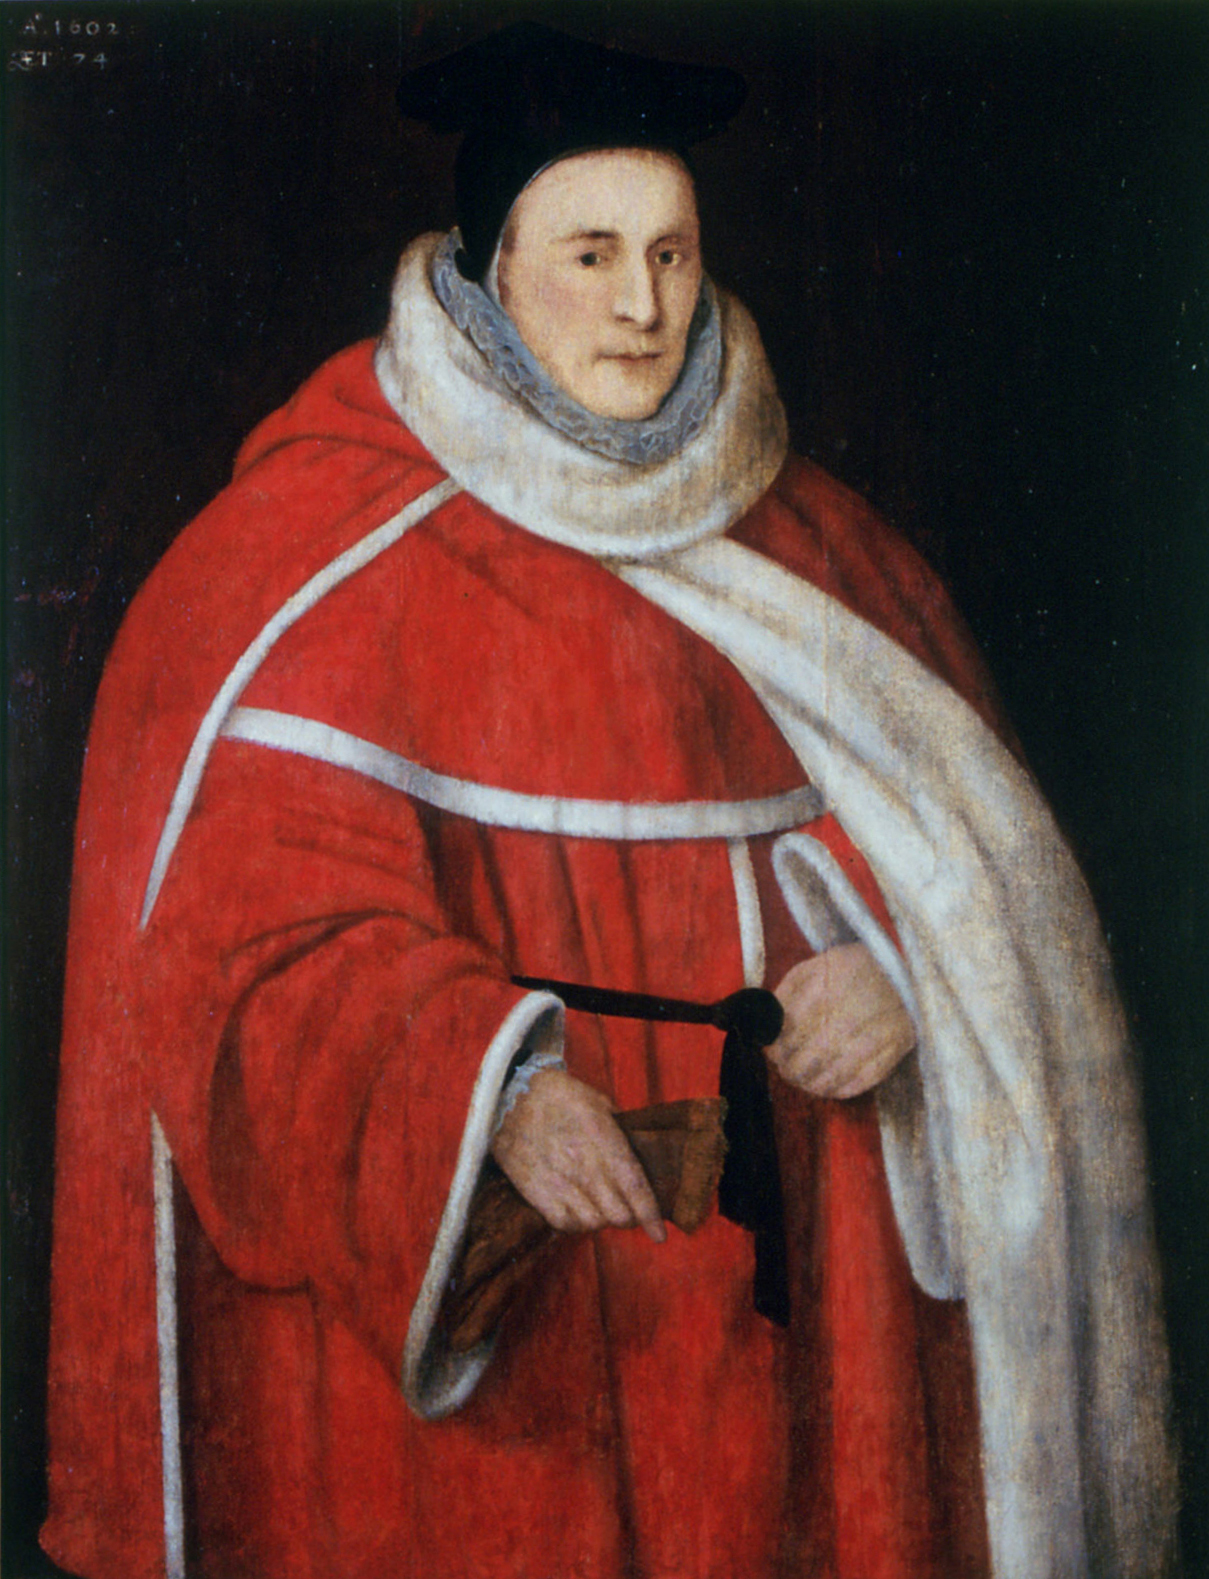 John Popham, the Chief Justice of the King's Bench who brought the Common Pleas and King's Bench into conflict over assumpsit